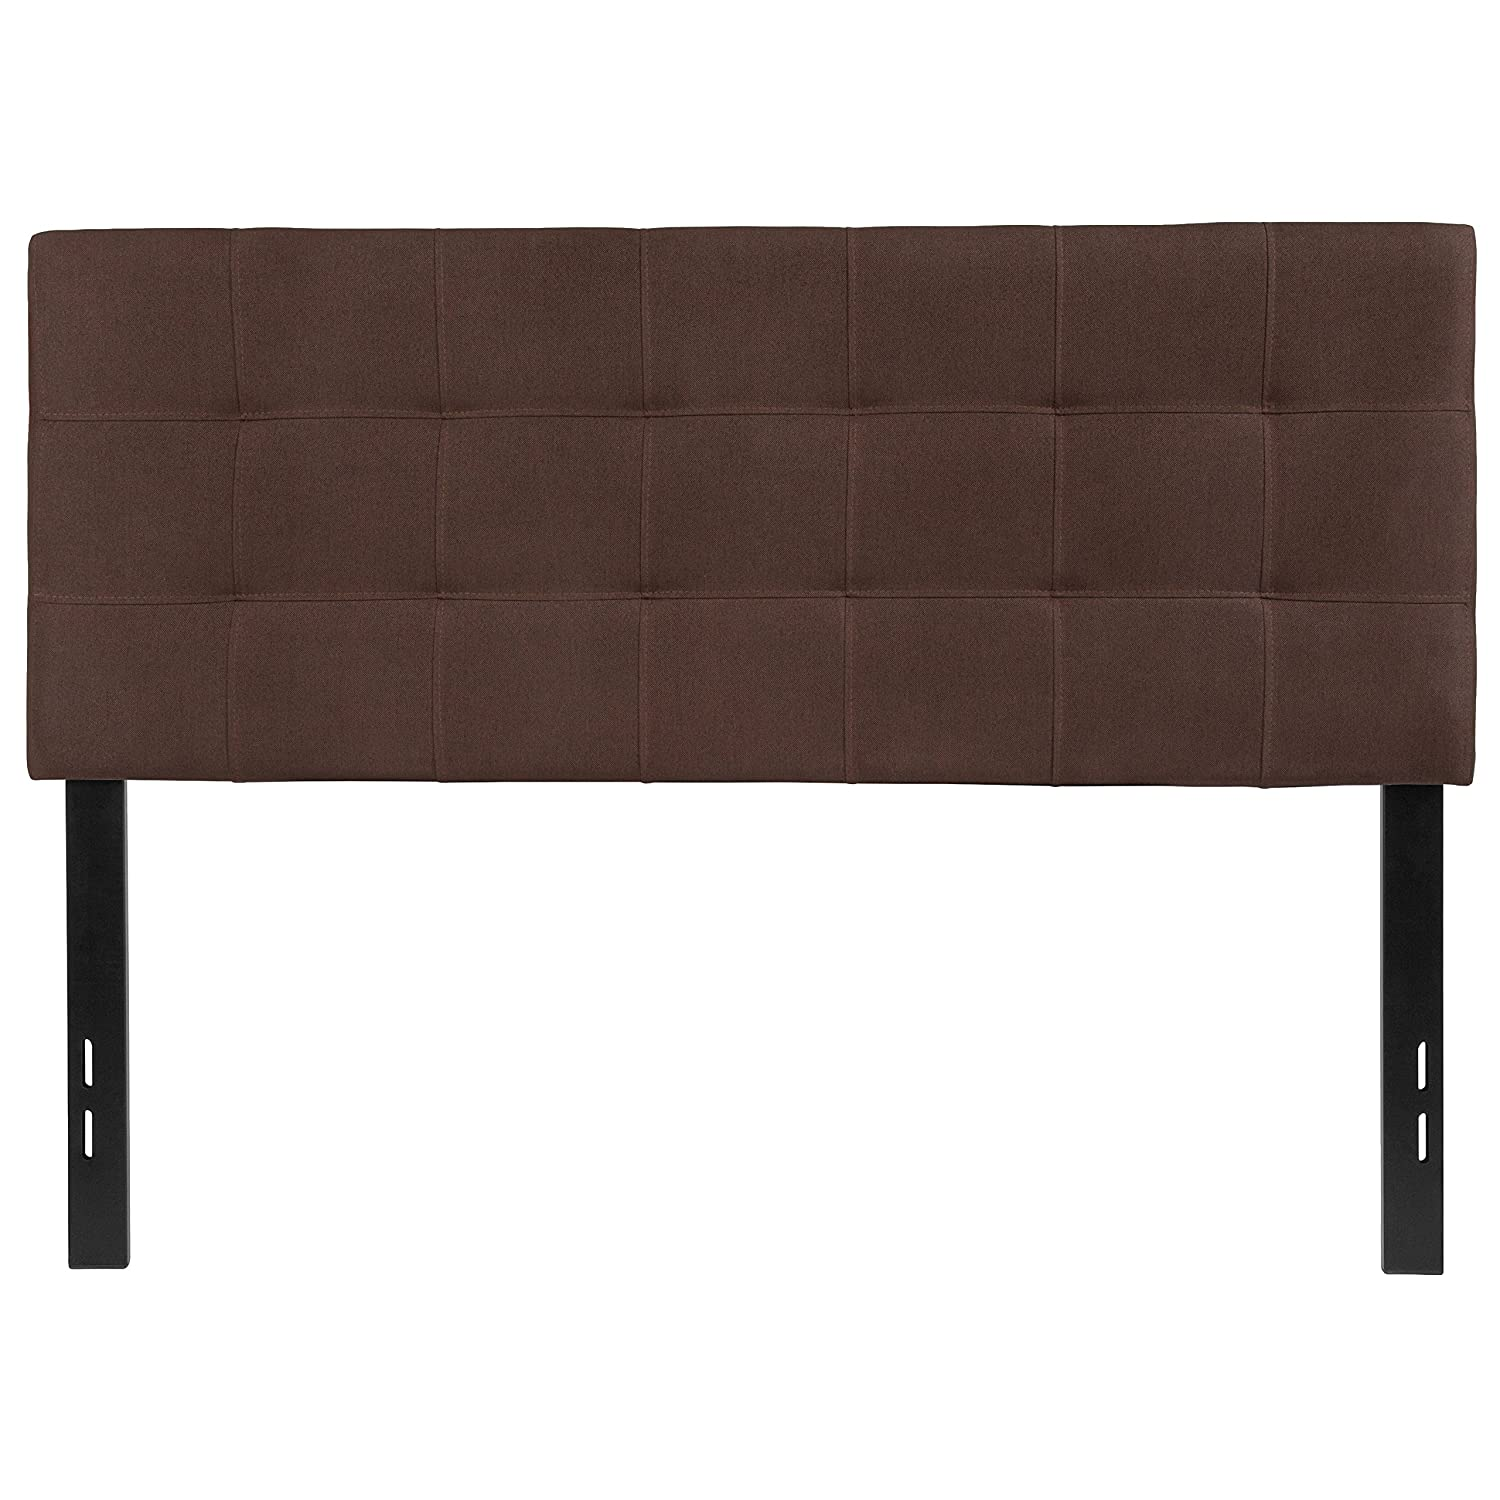 Flash Furniture Bedford Tufted Upholstered Full Size Headboard in Dark Brown Fabric